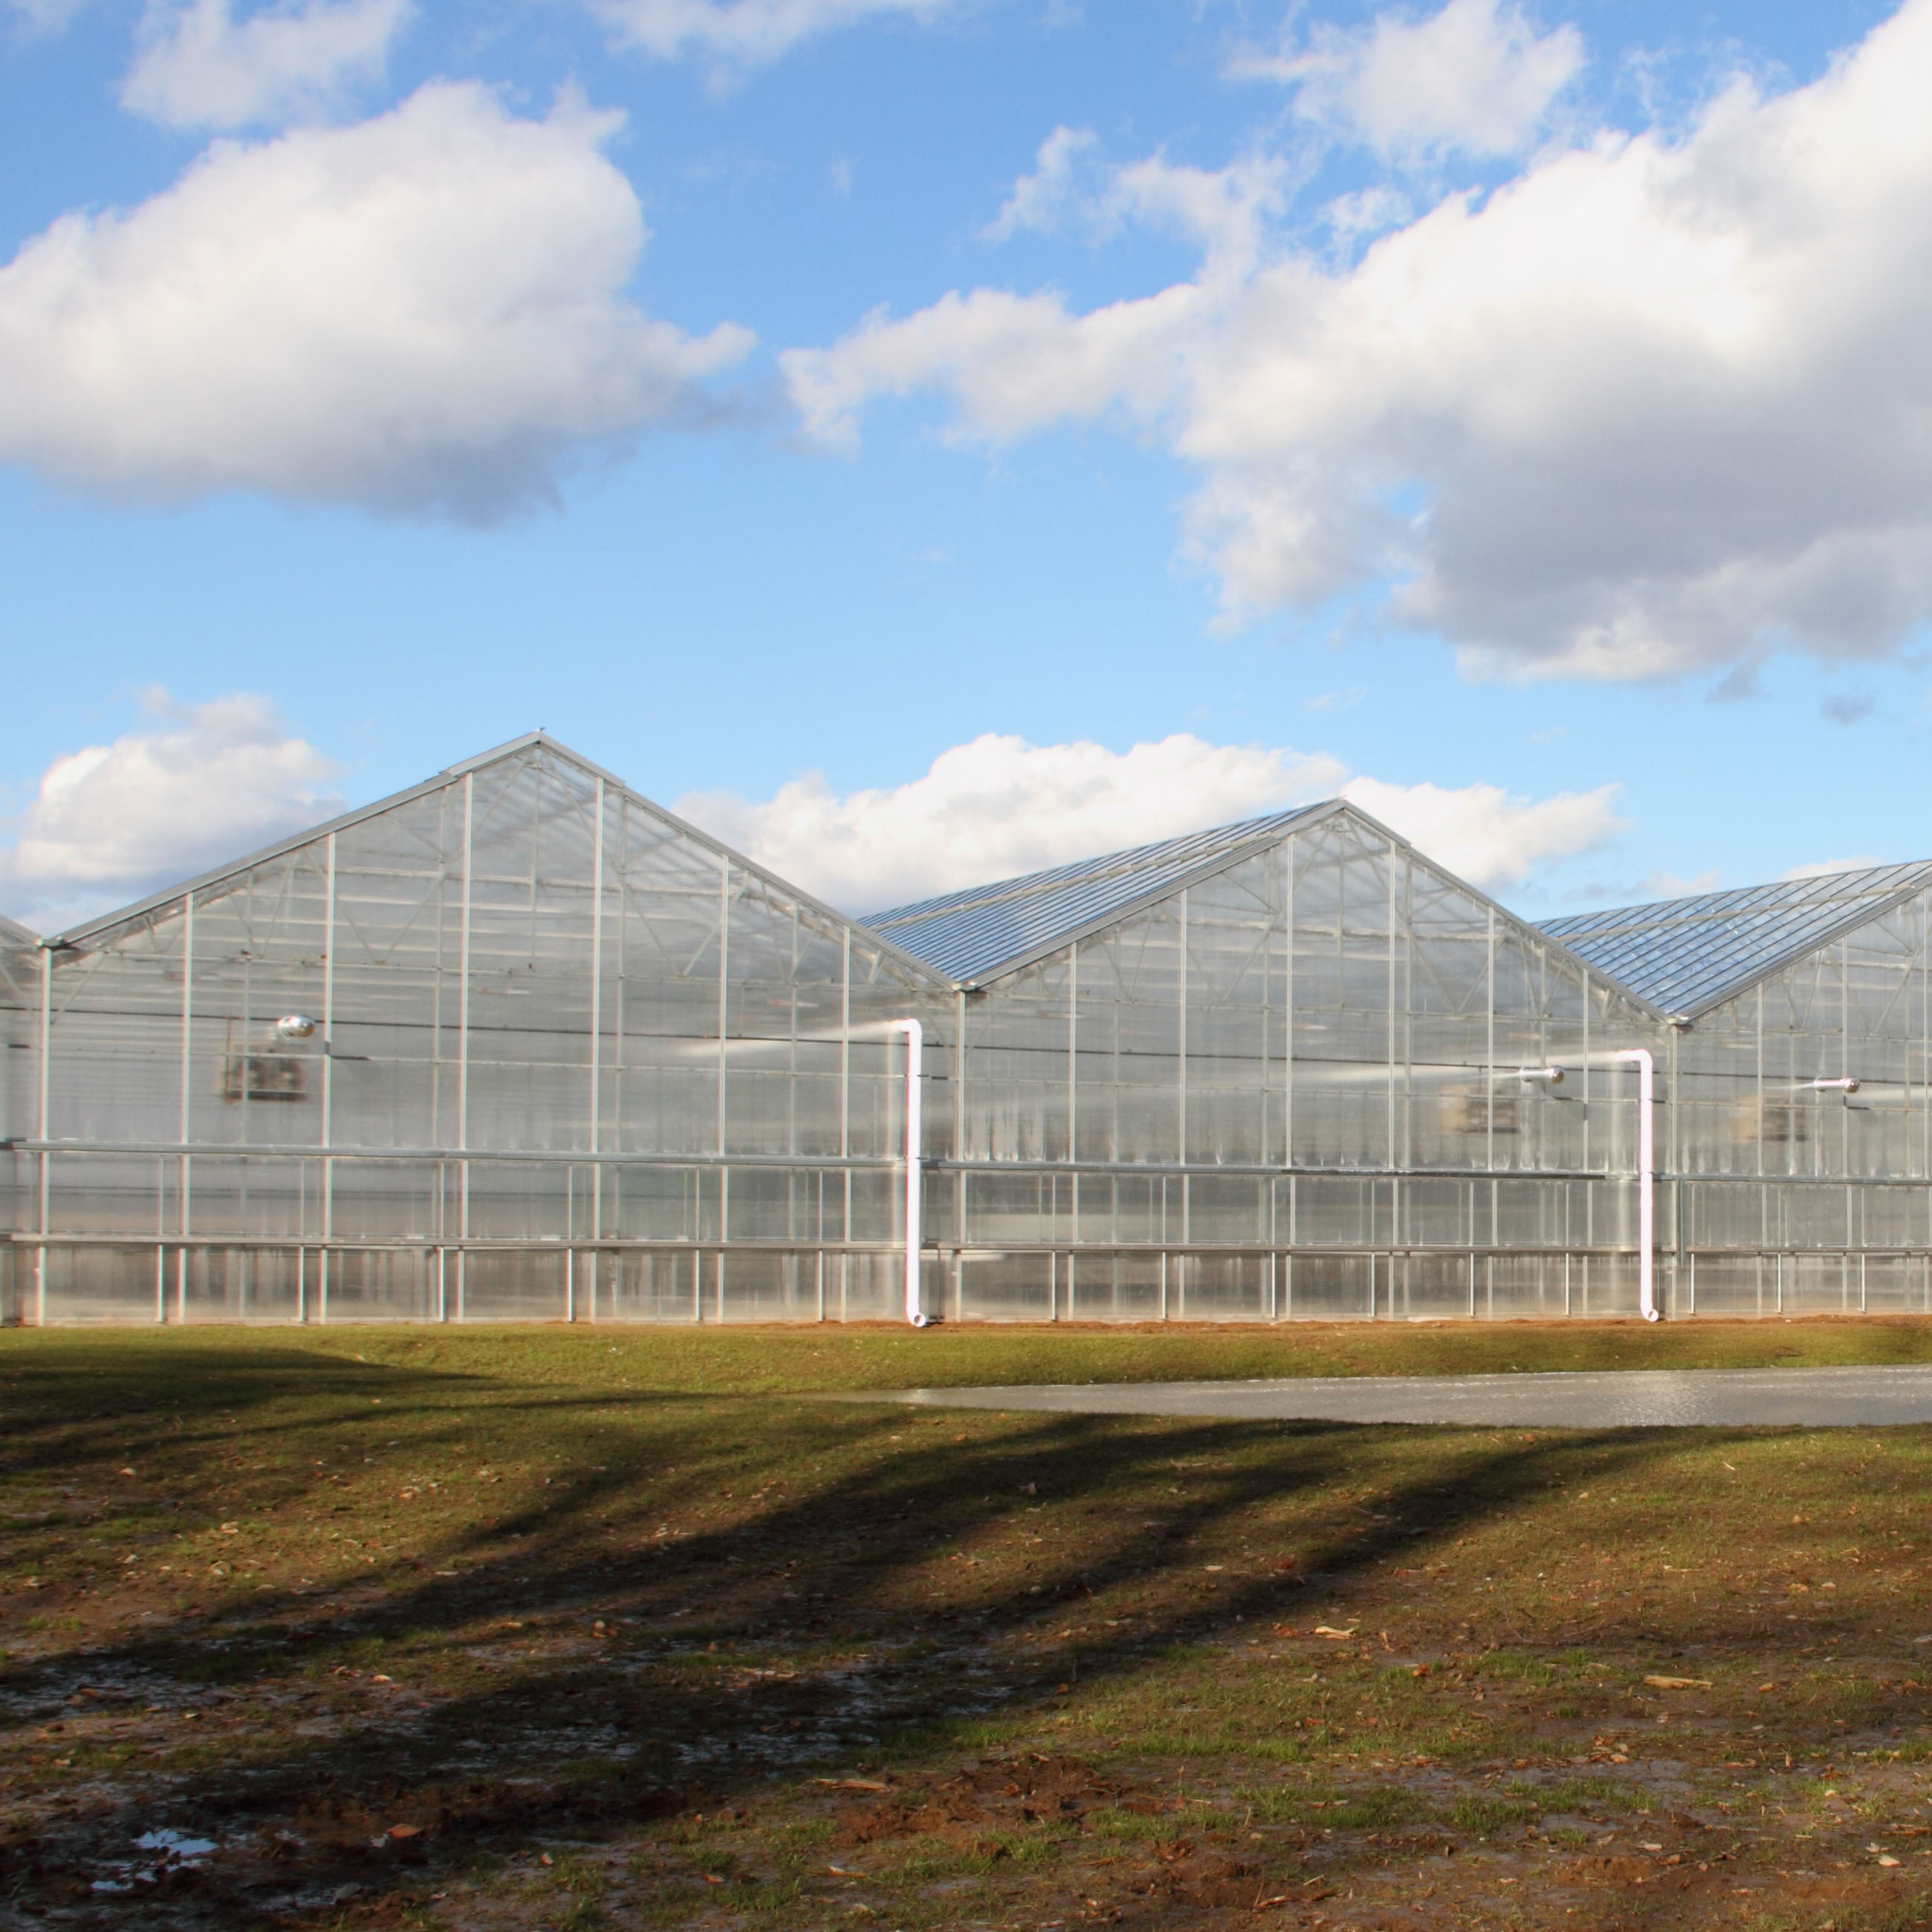 The BrightFarms greenhouse in Bucks County, Pa., supplies produce to a chain of supermarkets in Pennsylvania and New Jersey.